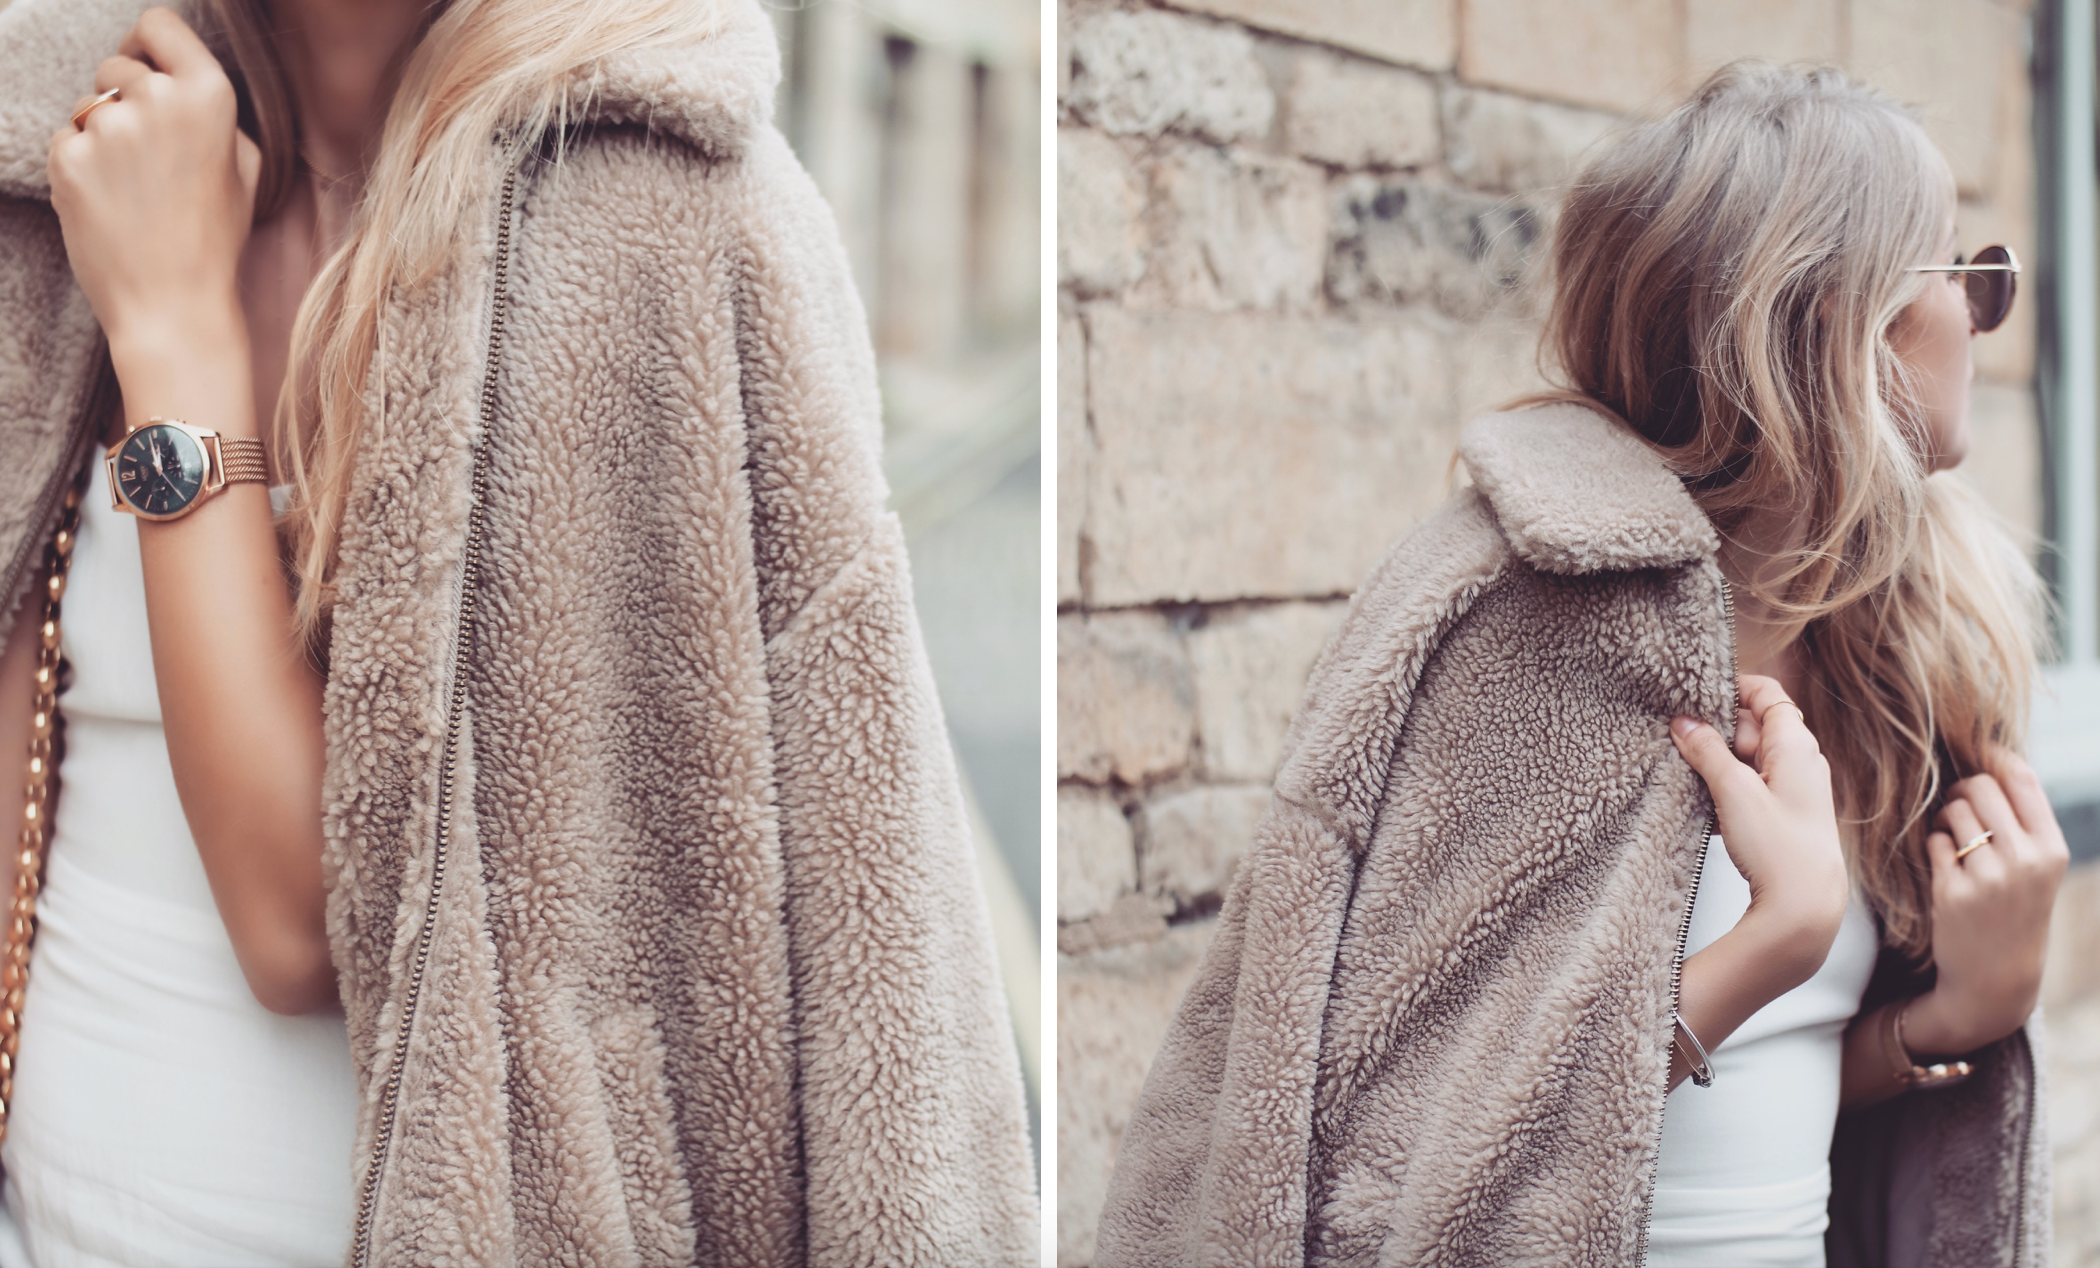 fd269ae343c5 Teddy-Coat-Fluffy-Jacket-Urban-Outfitters | Love Style Mindfulness ...